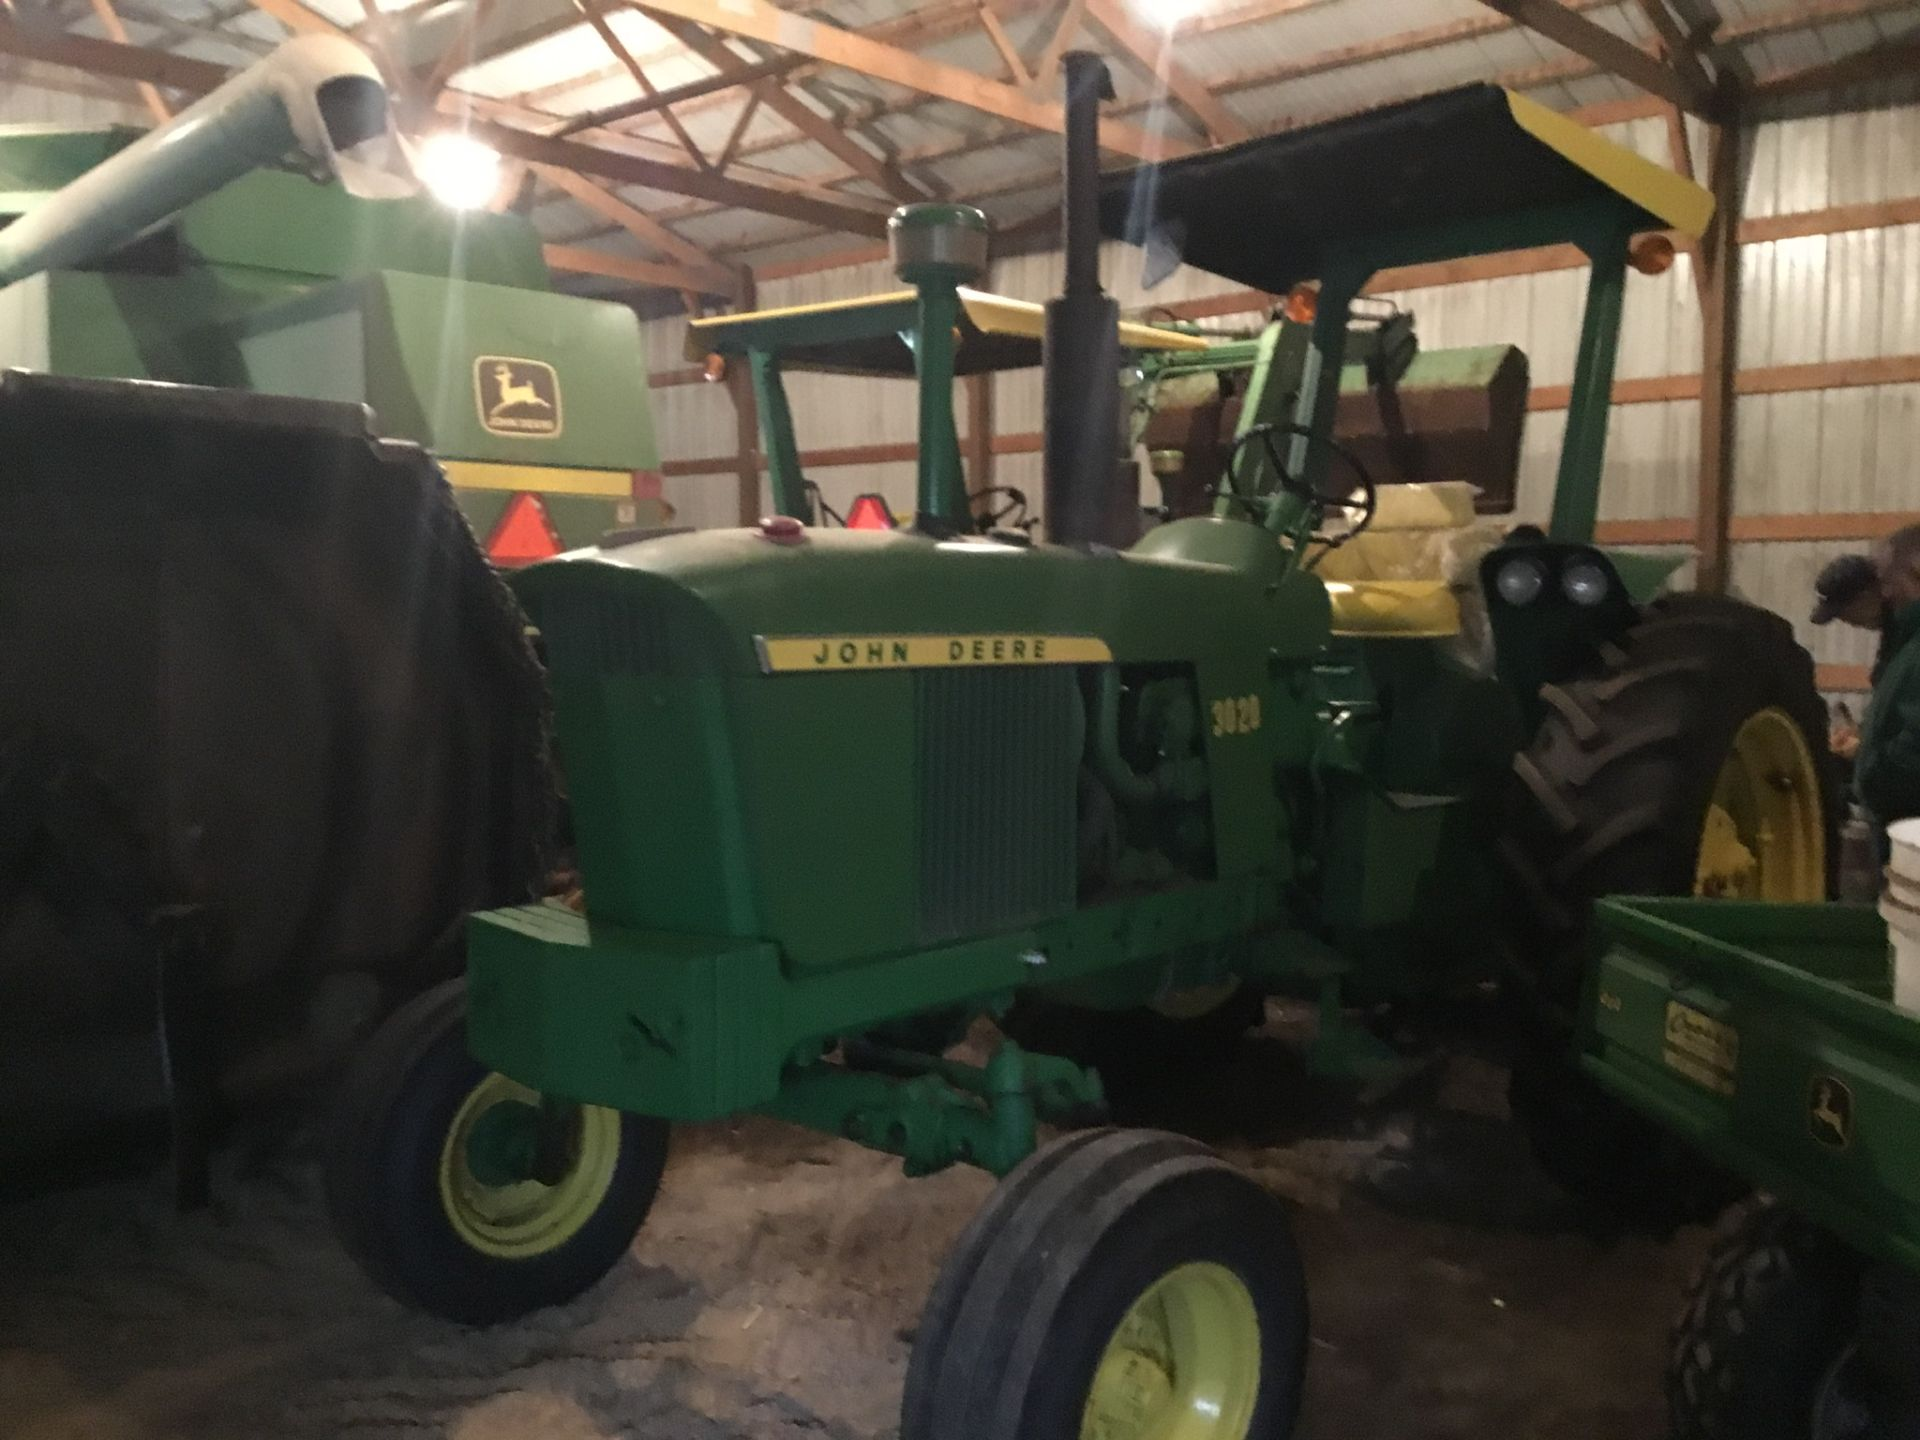 1966 John Deere 3020 Gas, JD Wide Front, Synchro Range, Roll Bar & Canopy, Dual Hydraulic Remotes, - Image 6 of 13